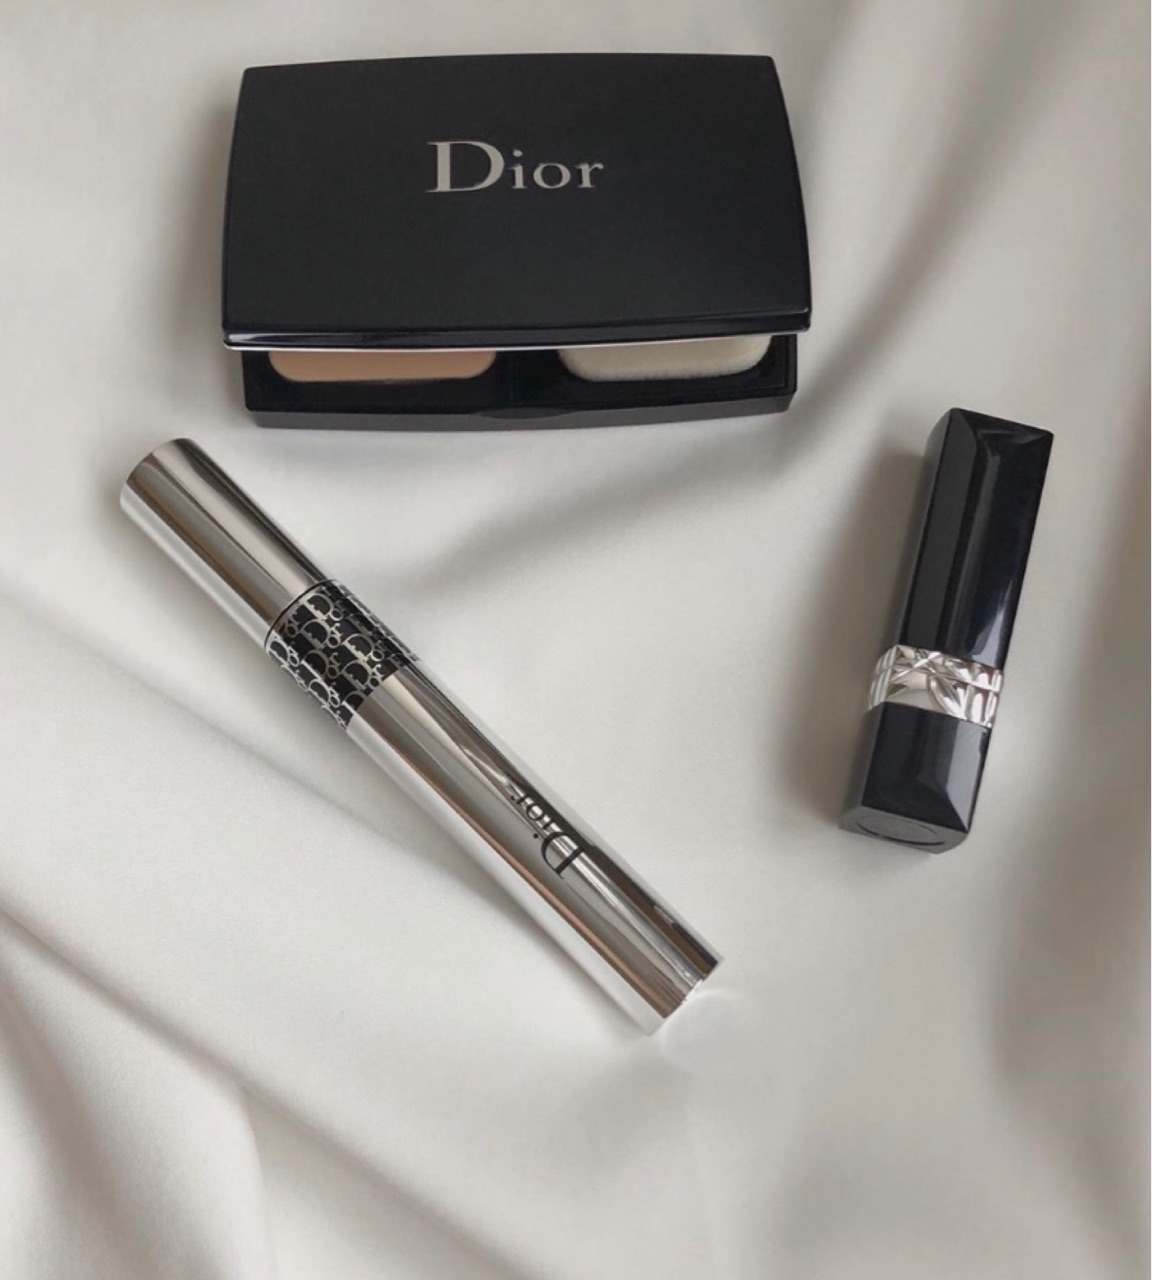 dior, beauty, and cosmetics image